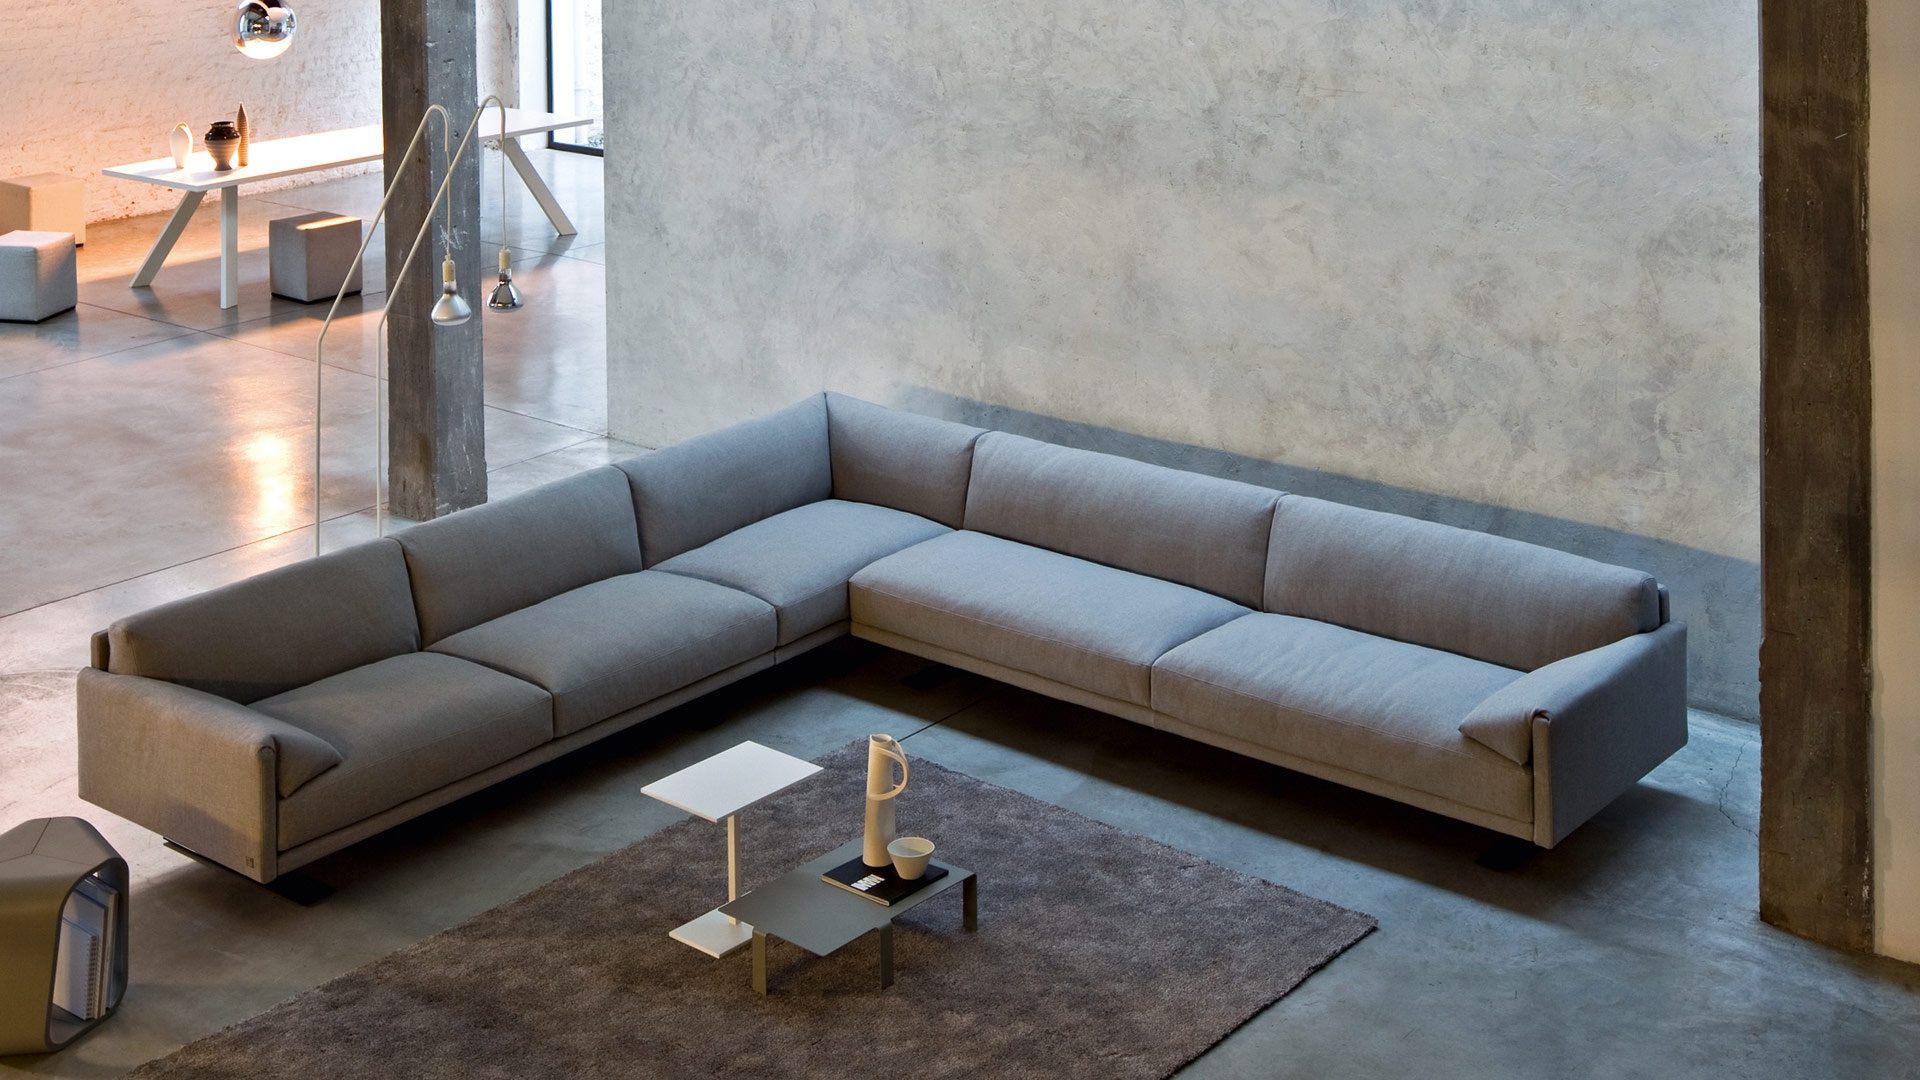 Chicago modular sofa with metal frame Busnelli Luxury furniture MR